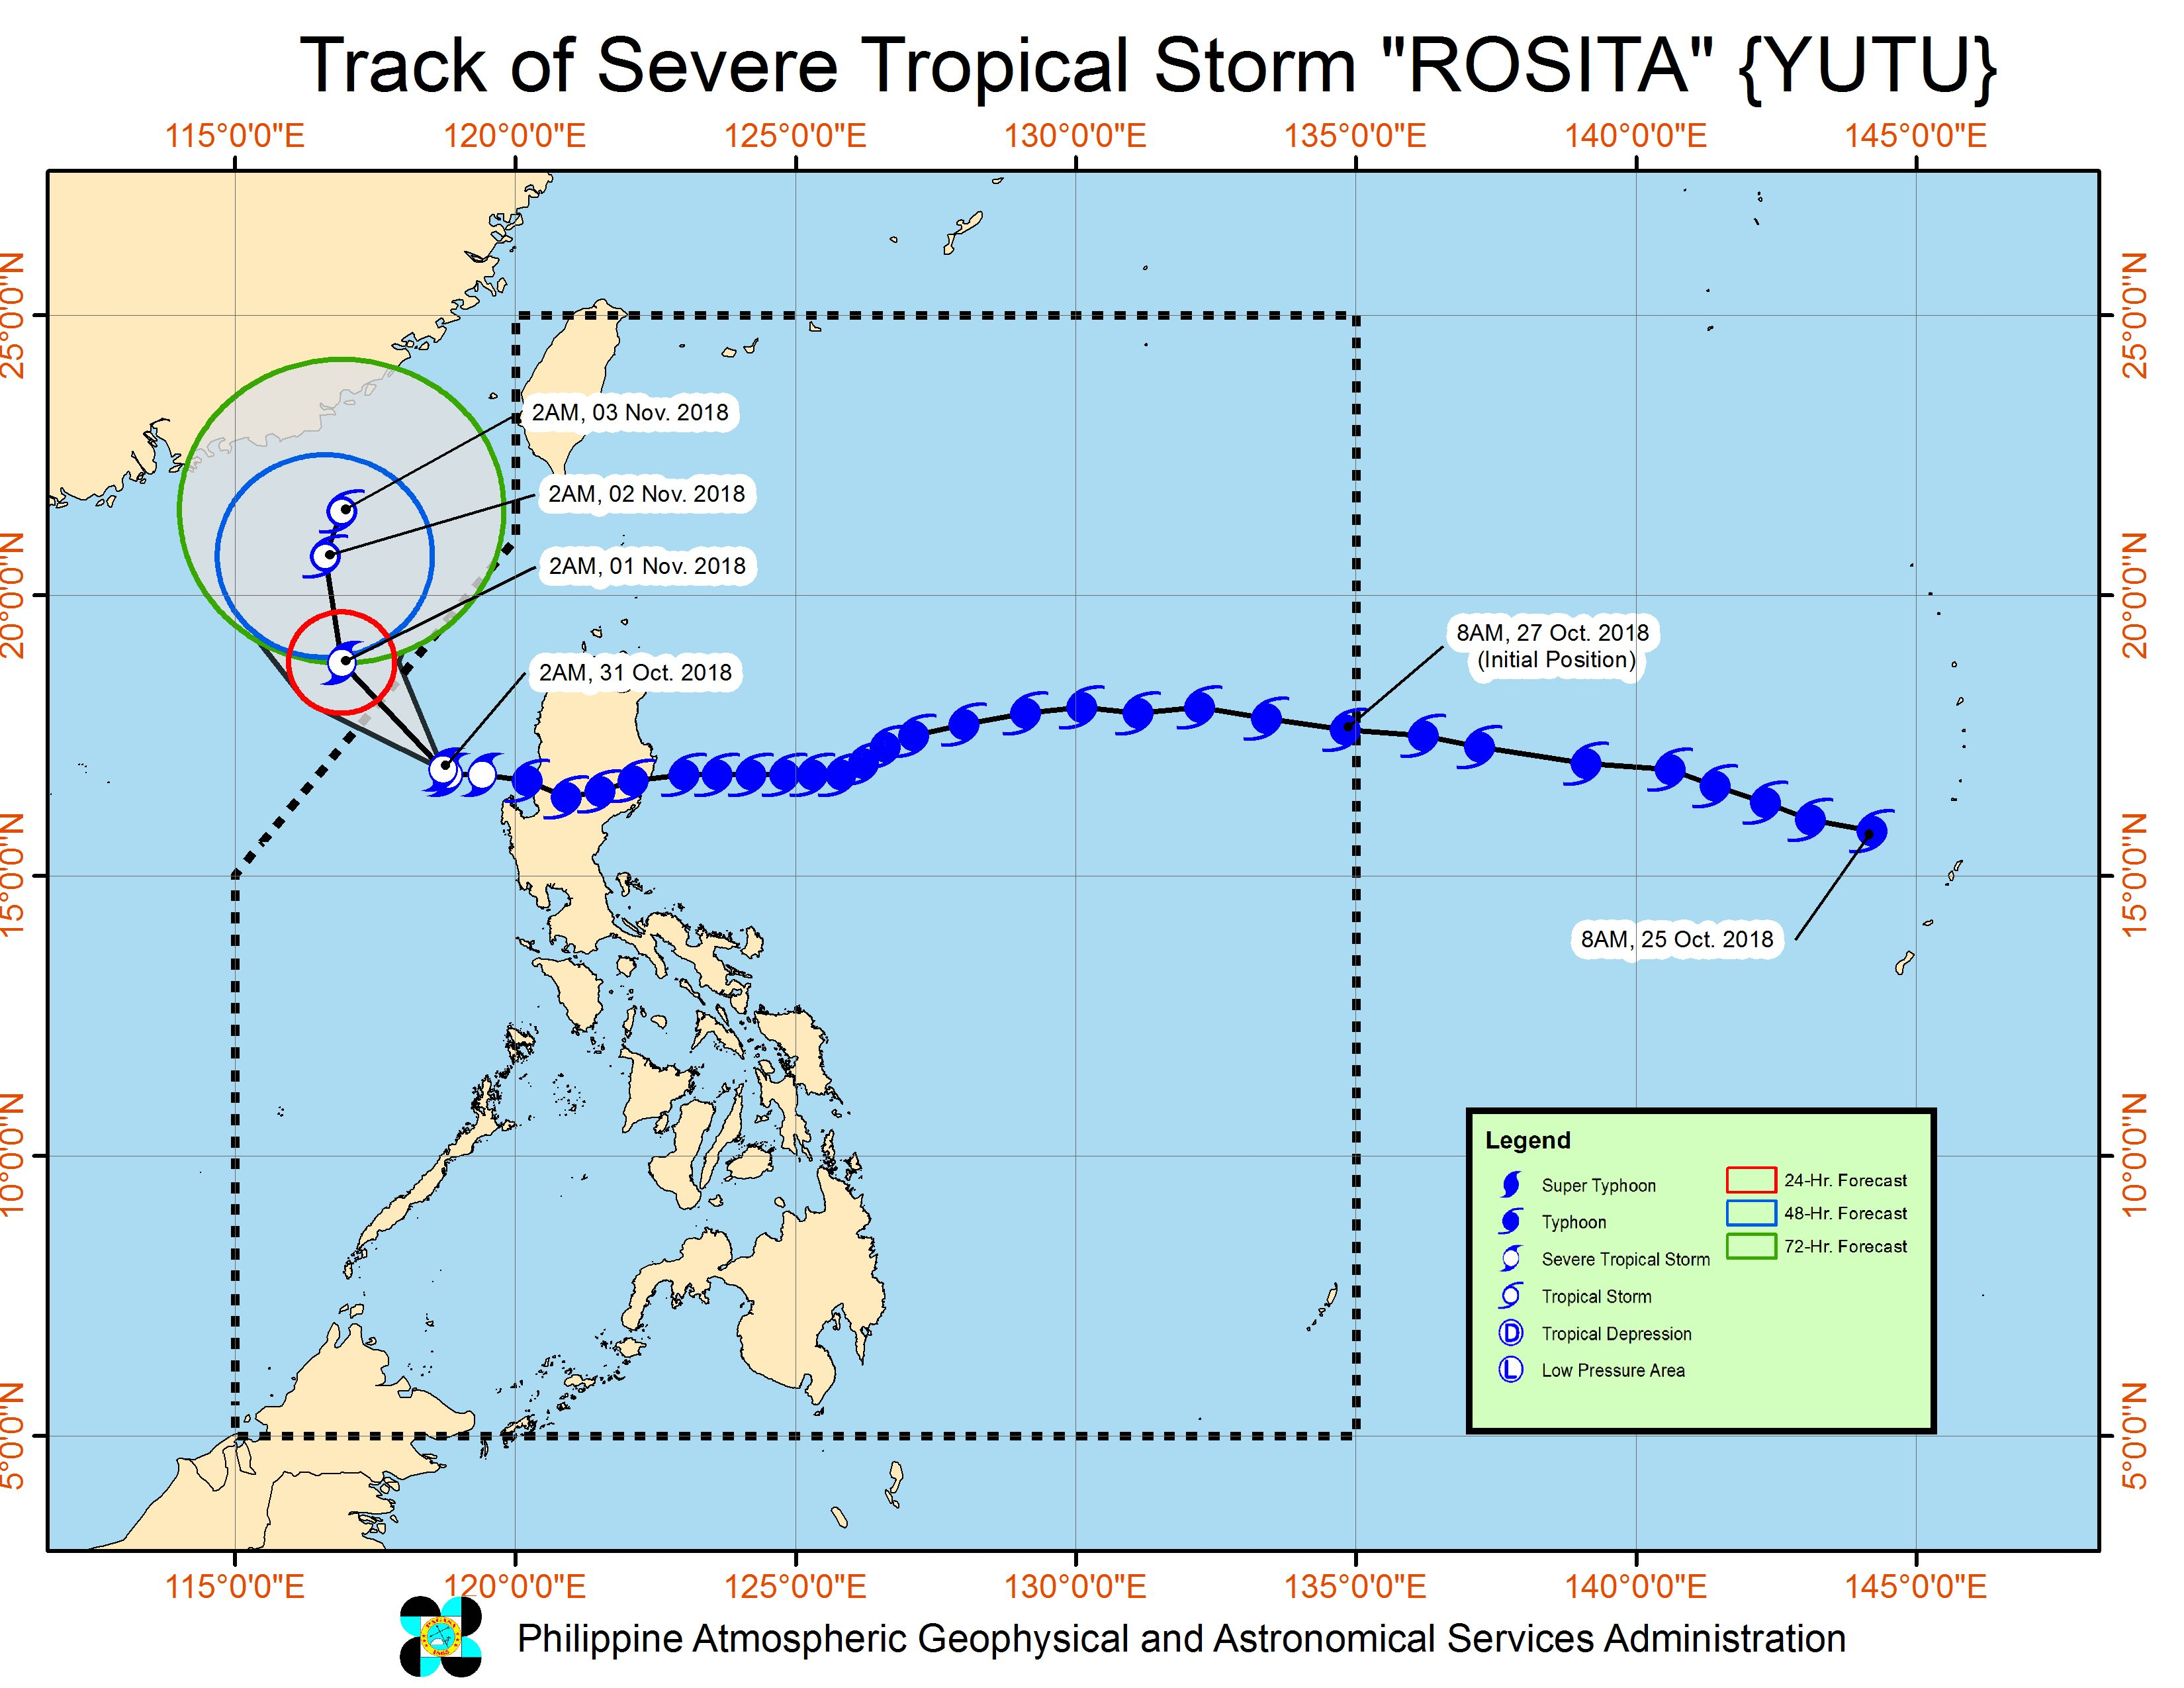 Forecast track of Severe Tropical Storm Rosita (Yutu) as of October 31, 2018, 5 am. Image from PAGASA